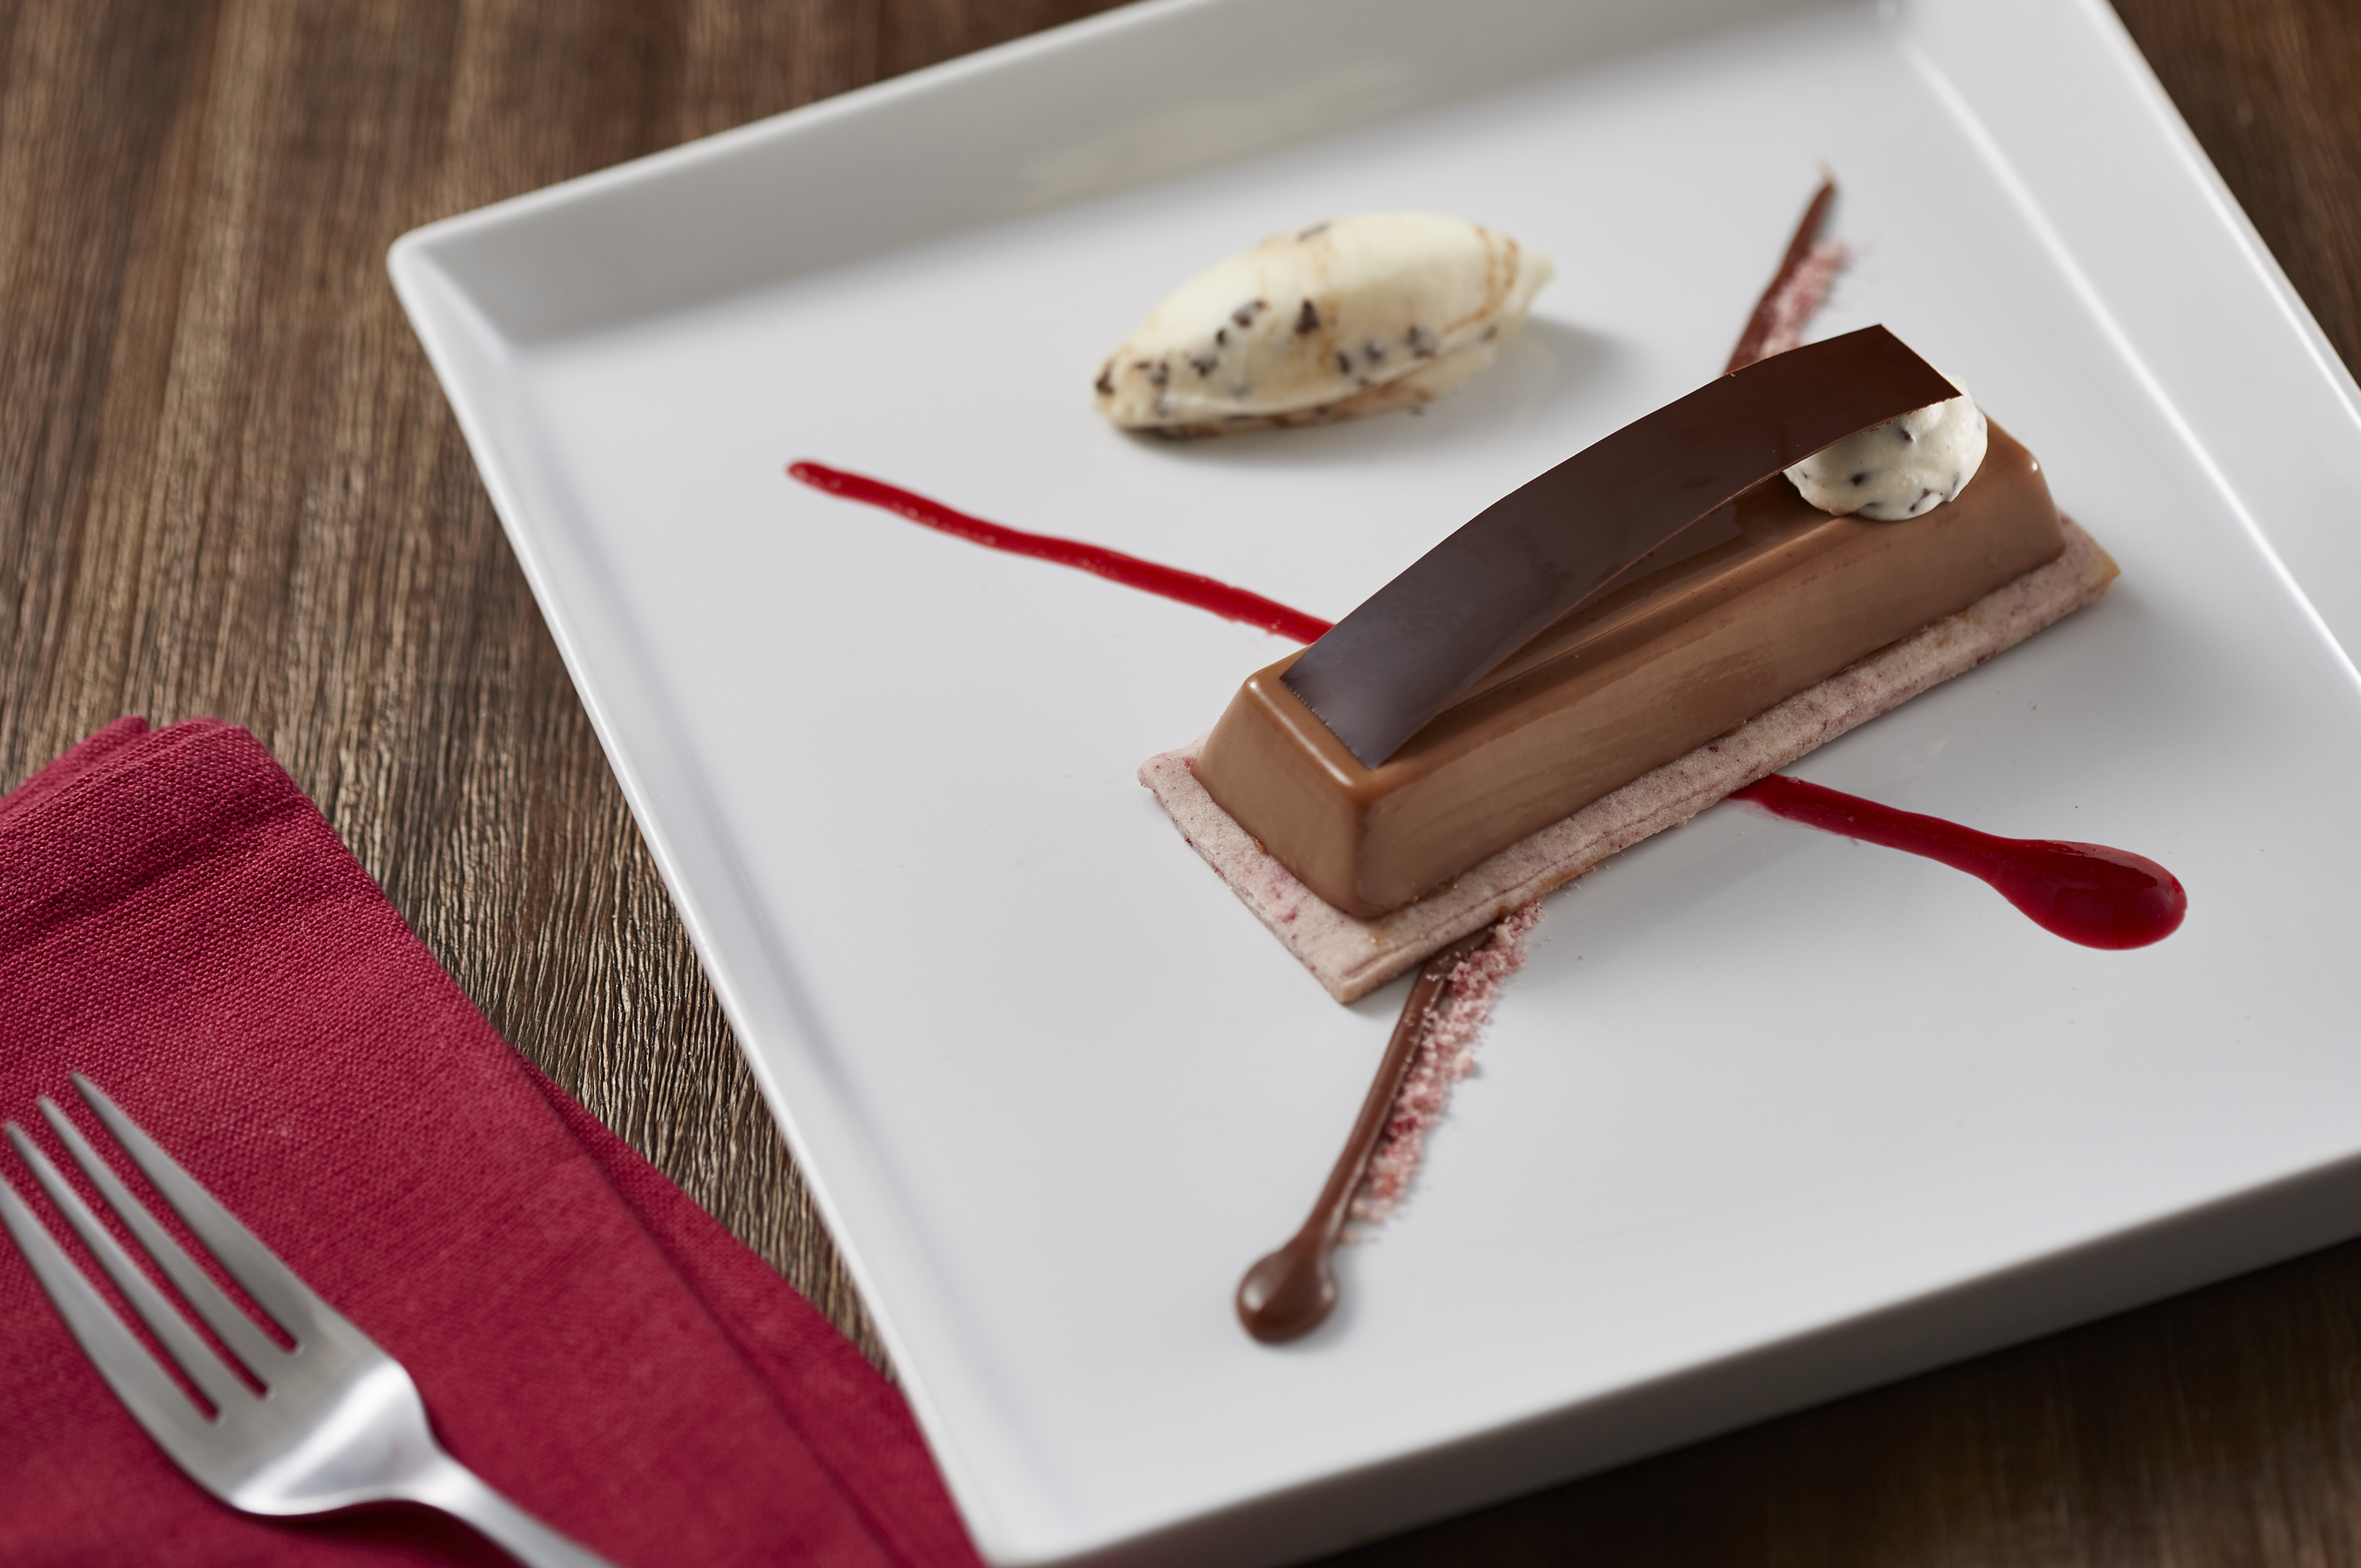 chocolate-panna-cotta.jpg